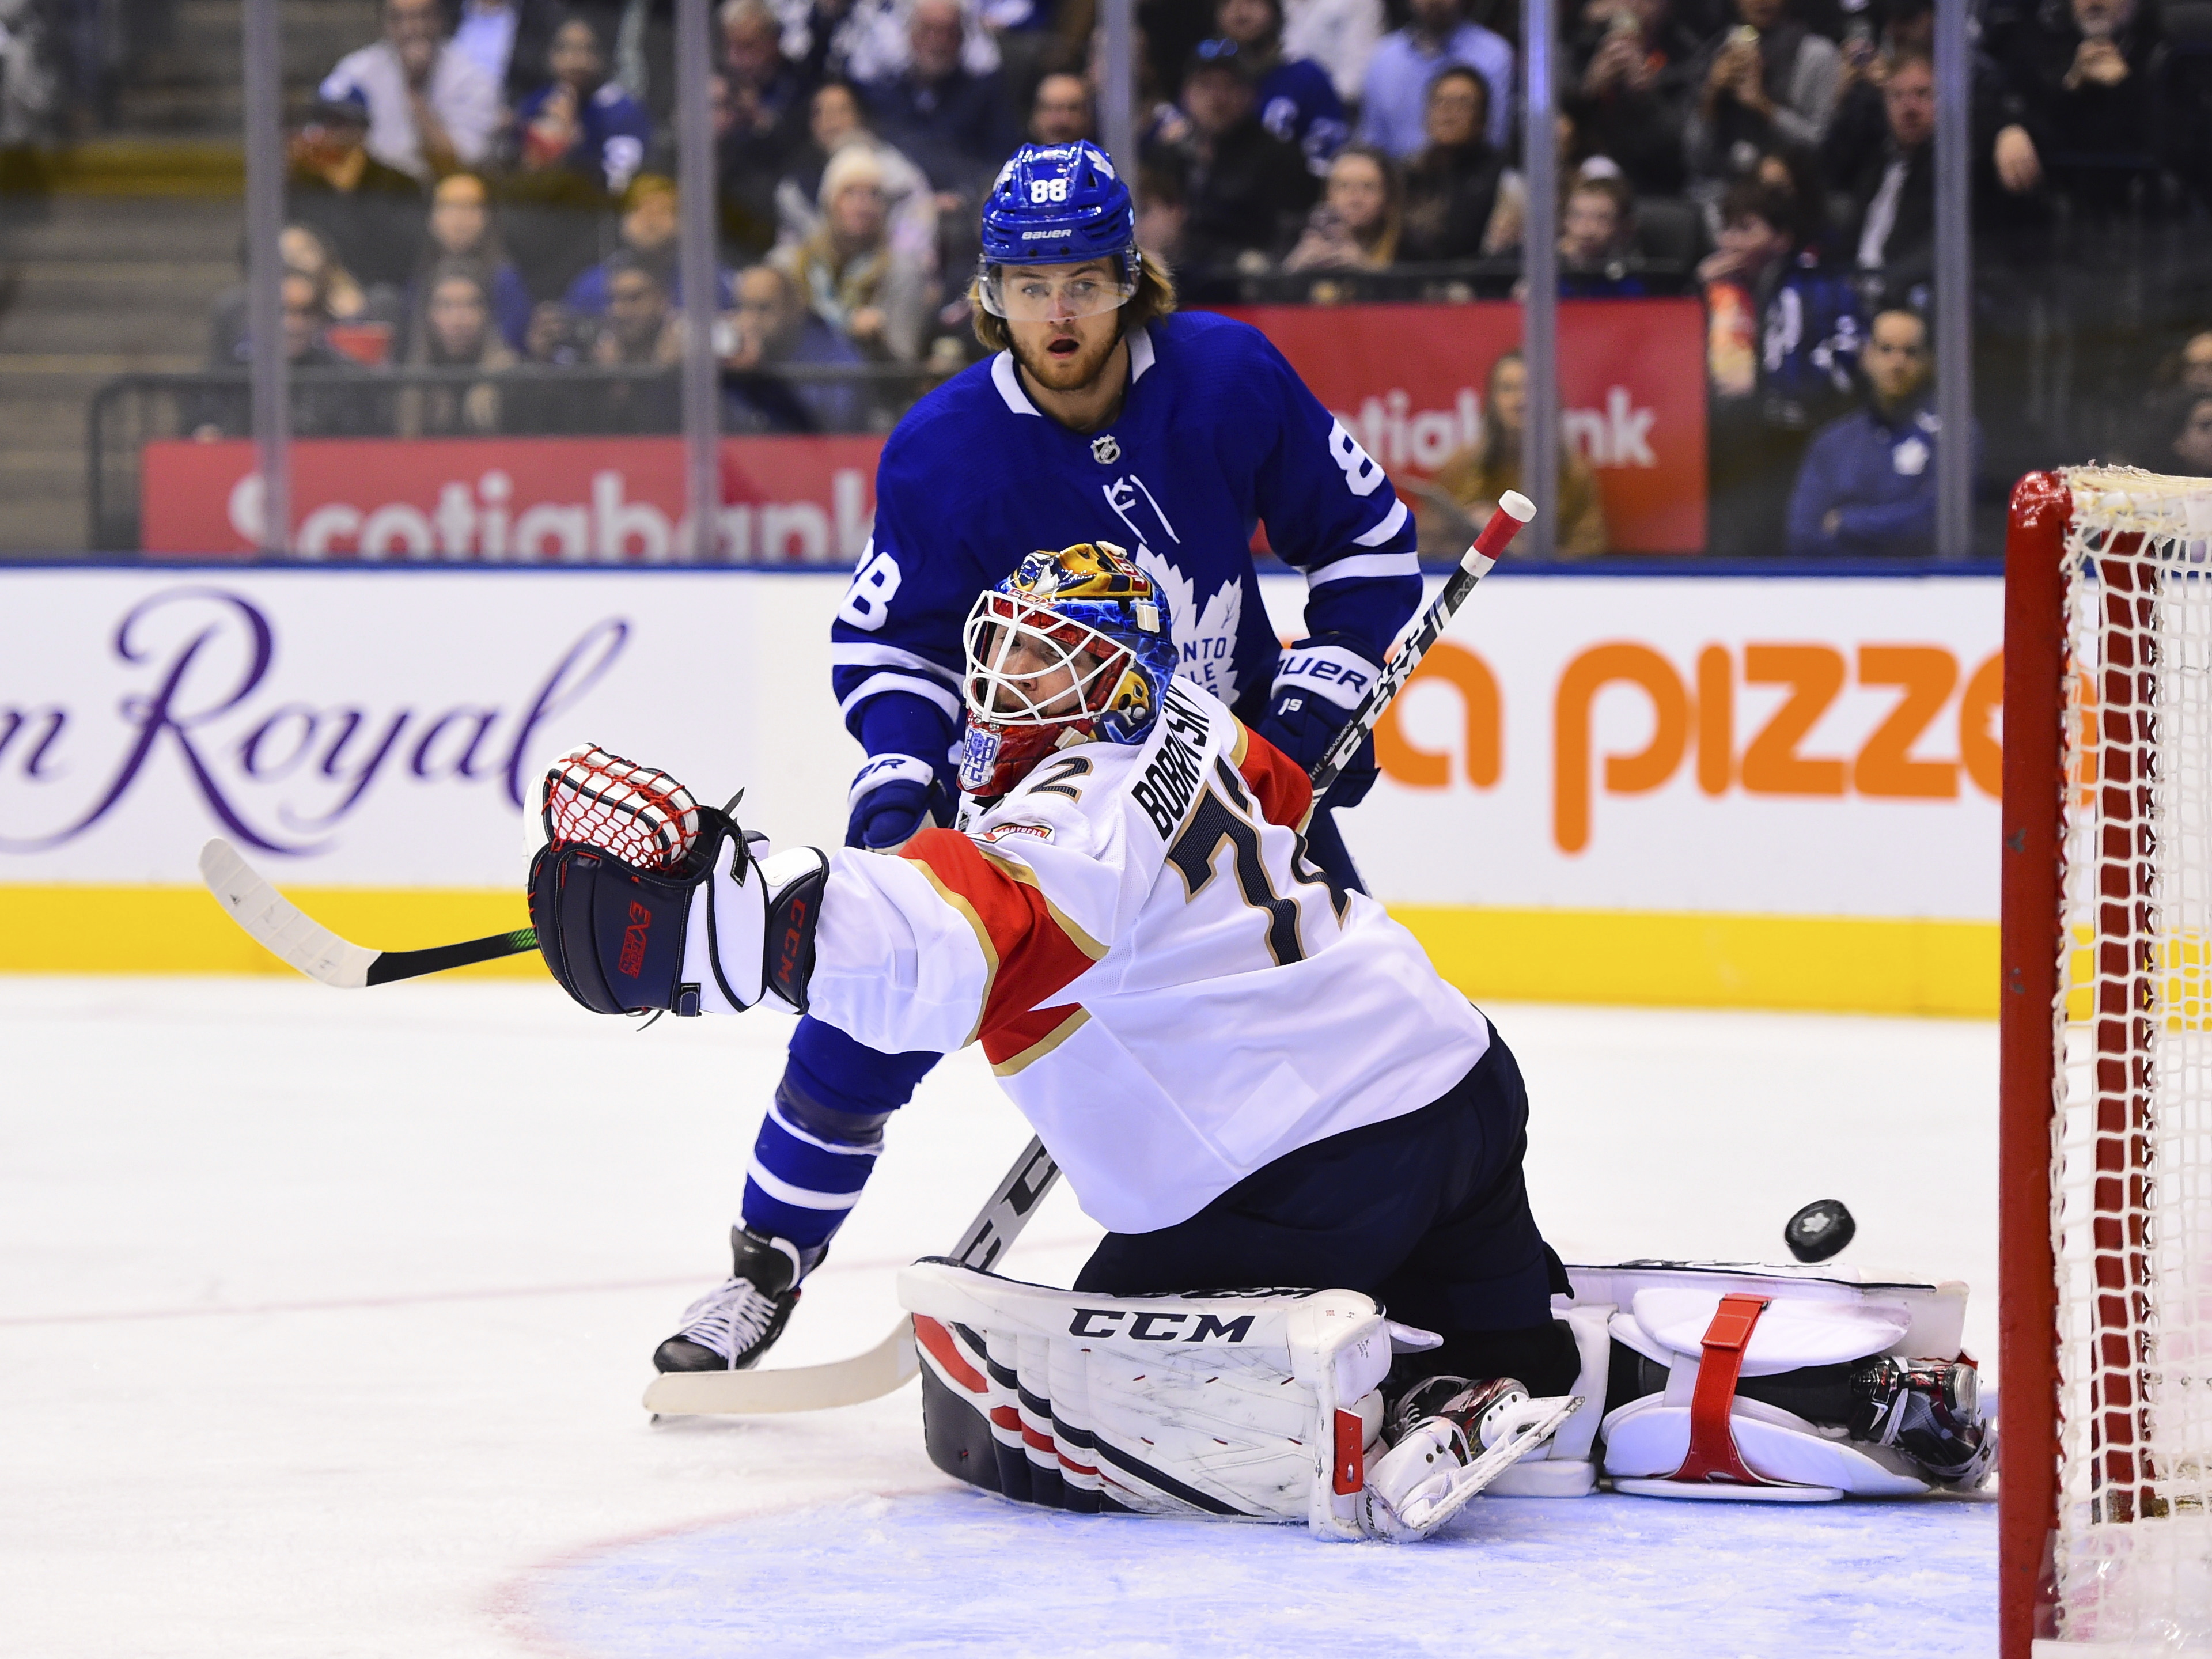 Pysyk scores 3 times as Panthers top Maple Leafs 5-3